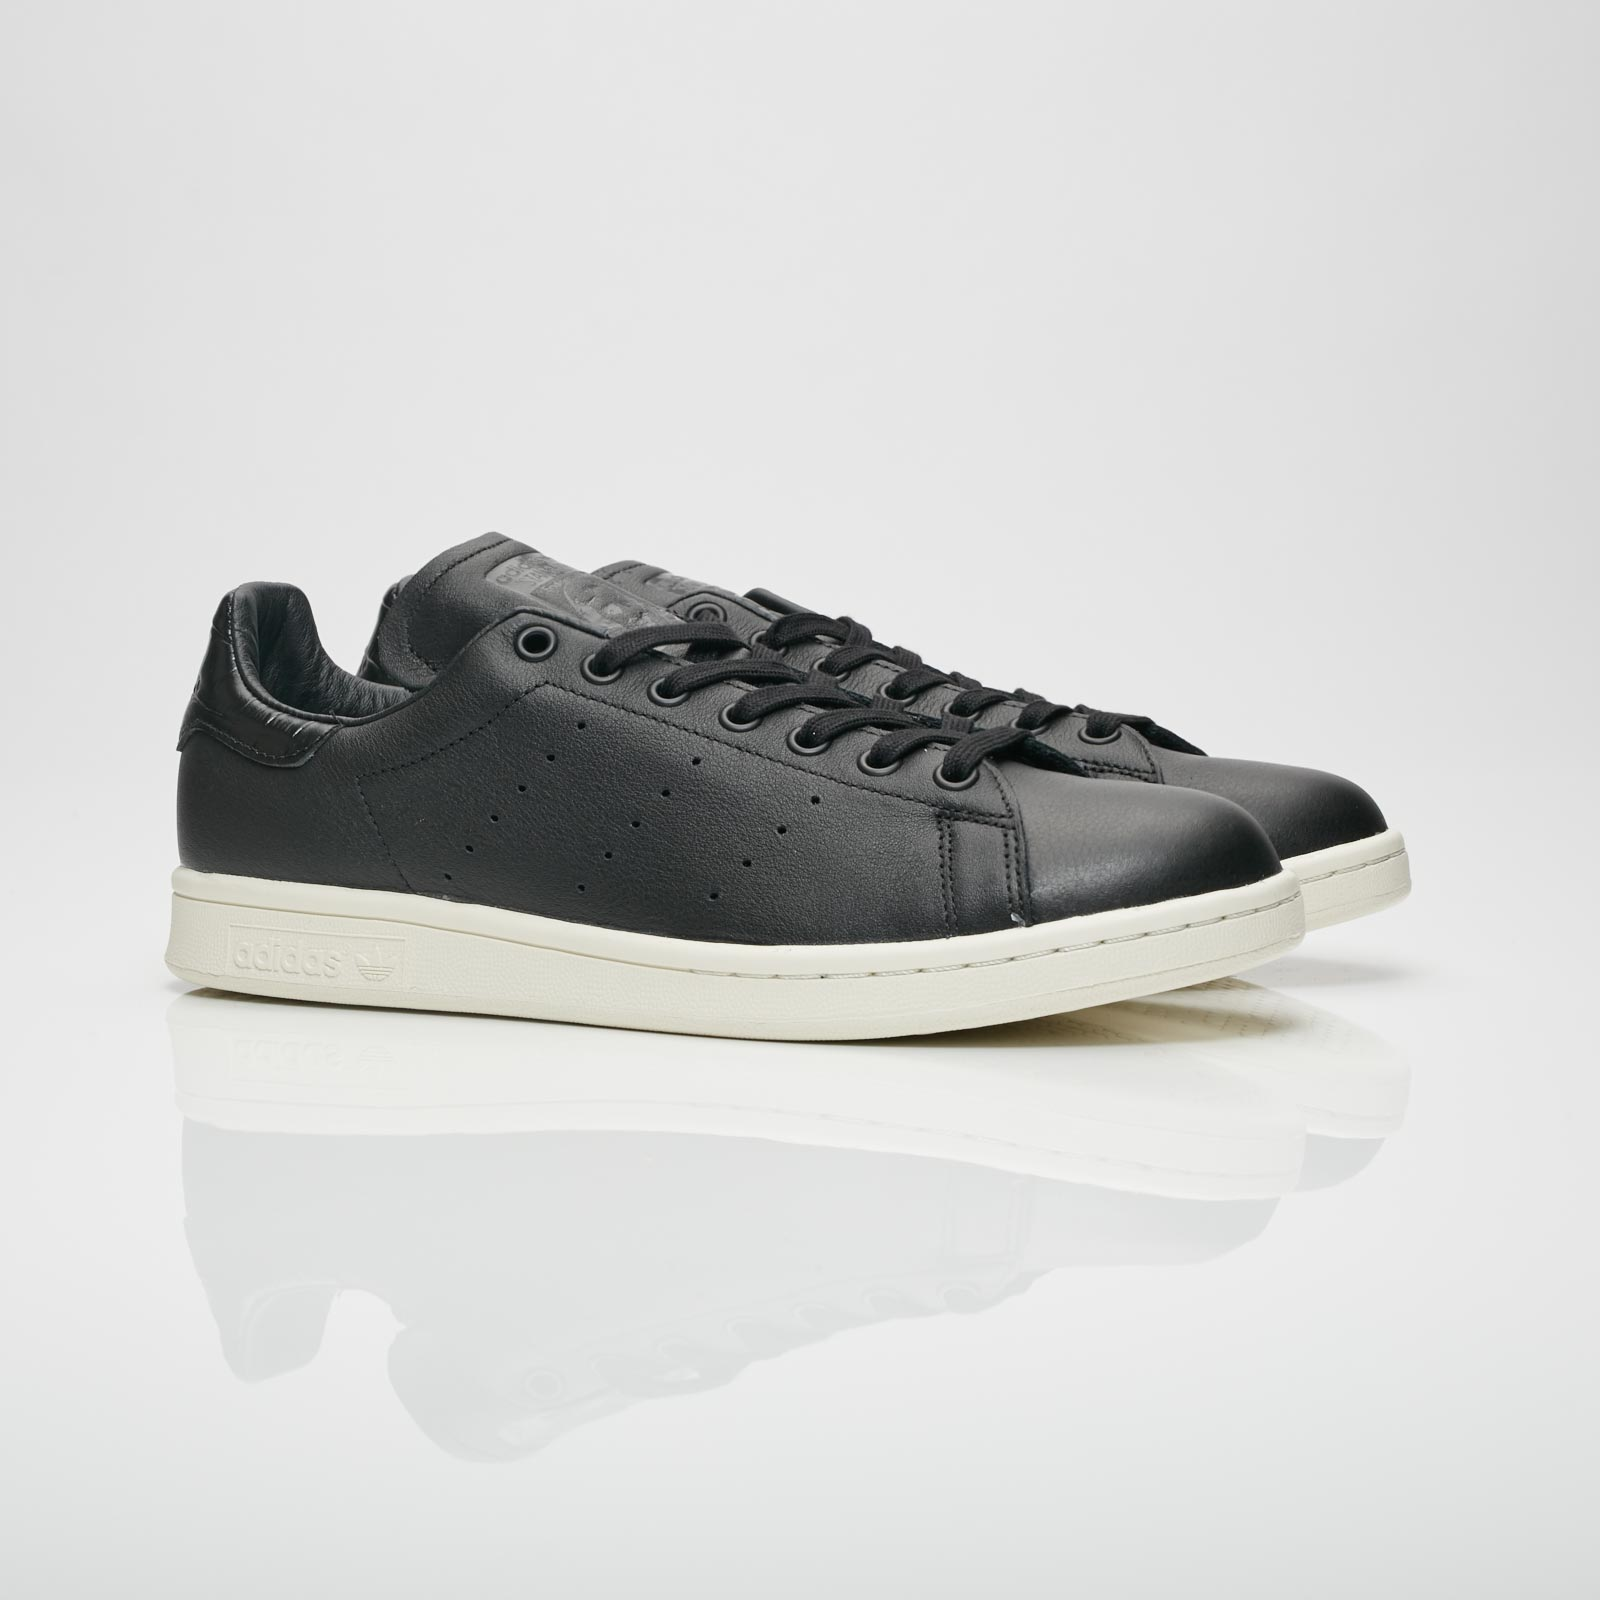 Baskets adidas Originals Stan Smith Leather - BZ0467 cTHObs